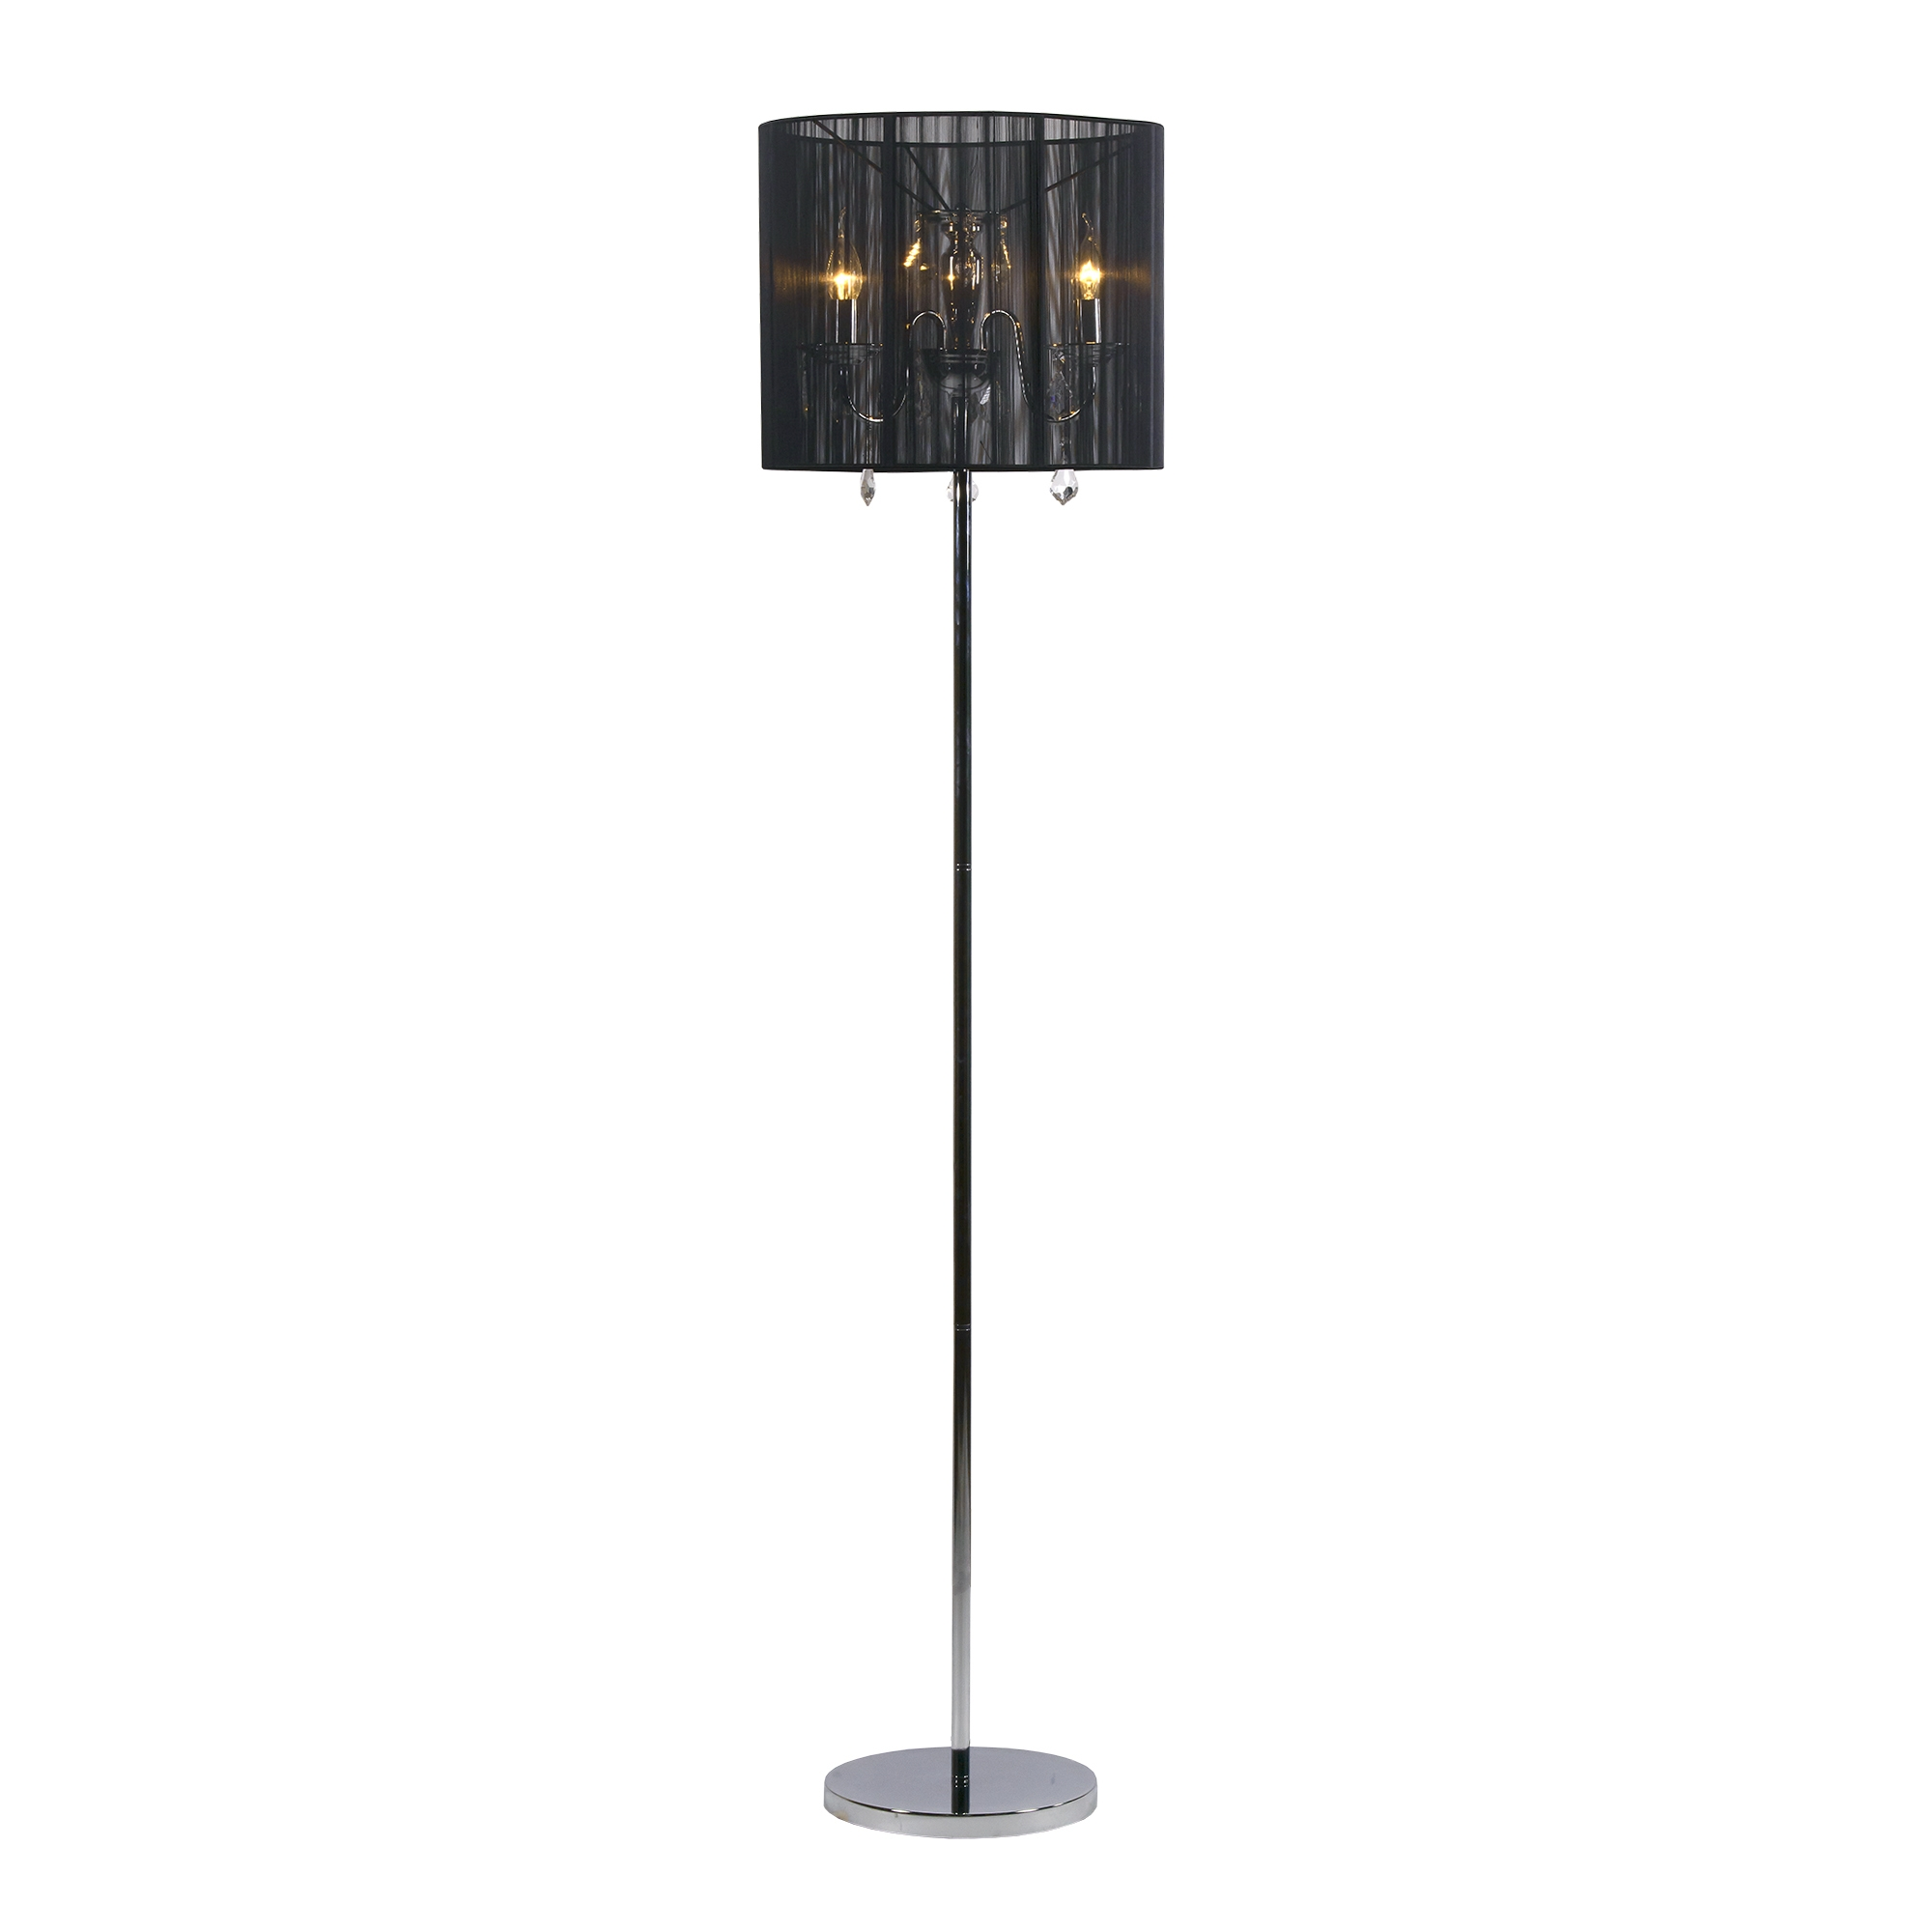 Contemporary Floor Lamp - Chrome and Black